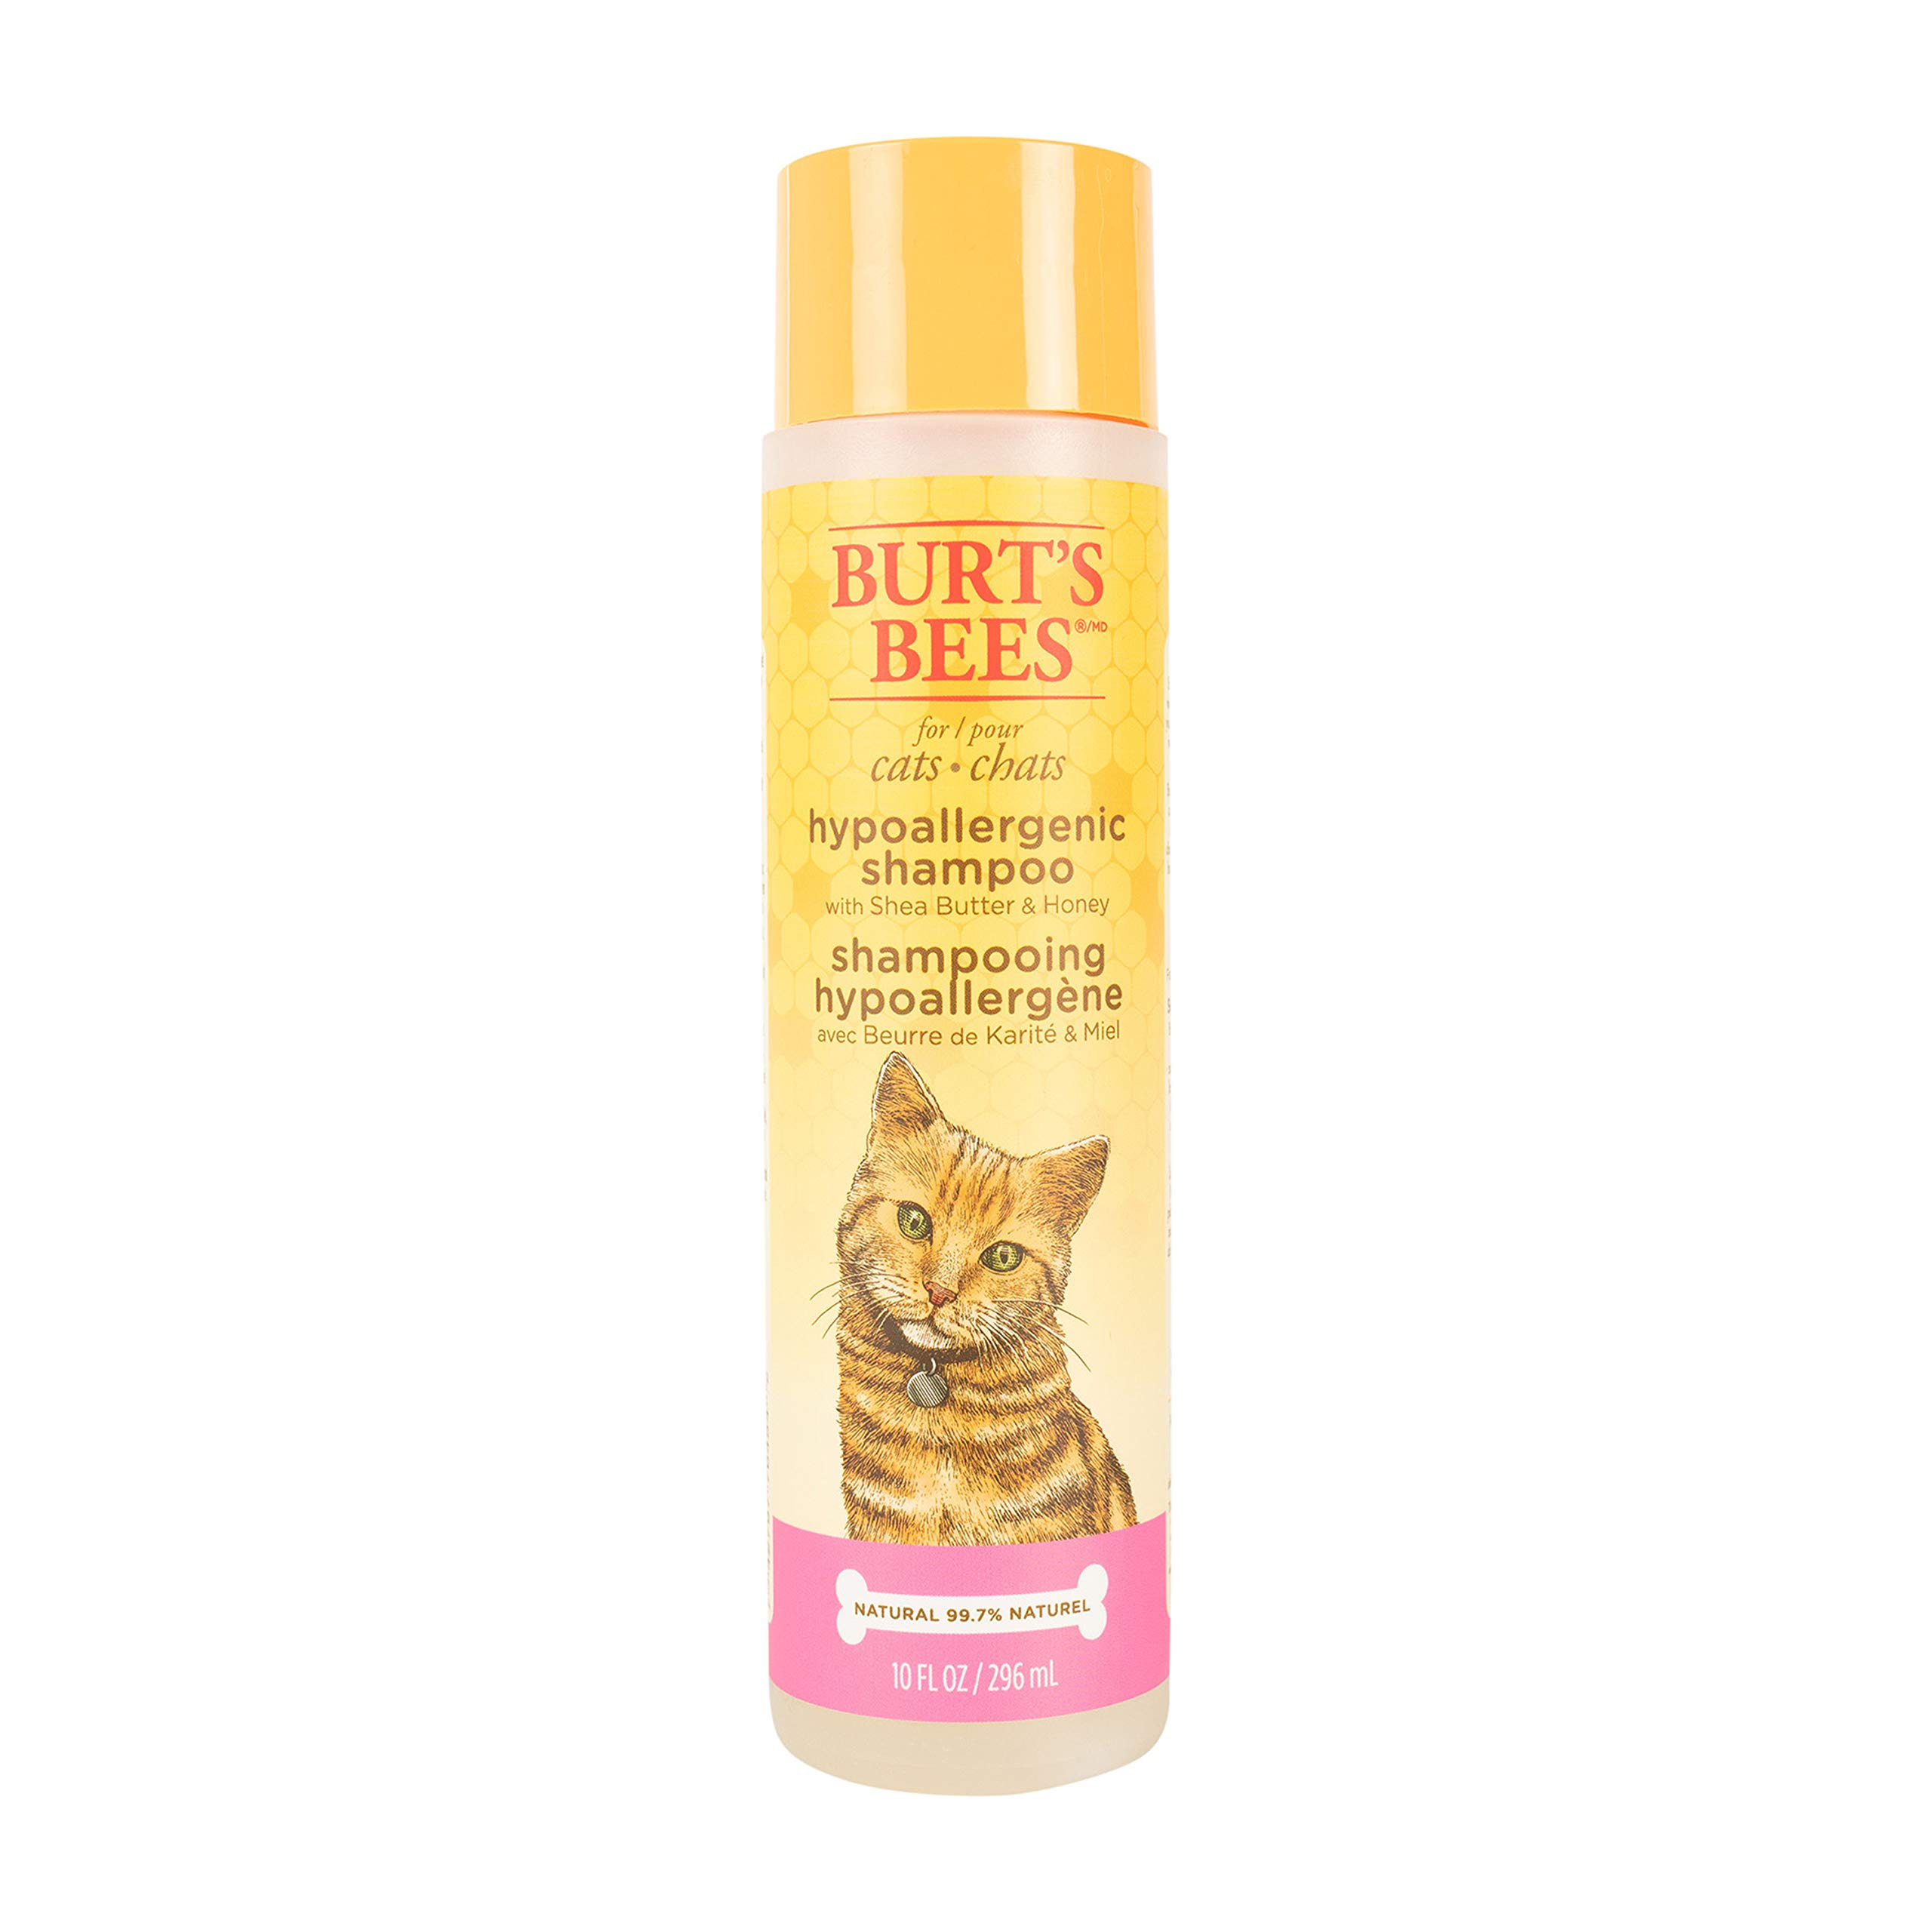 Burt's Bees for Pets Hypoallergenic Shampoo with Shea Butter and Honey | Best Shampoo for All Cats and Kittens with Sensitive Skin